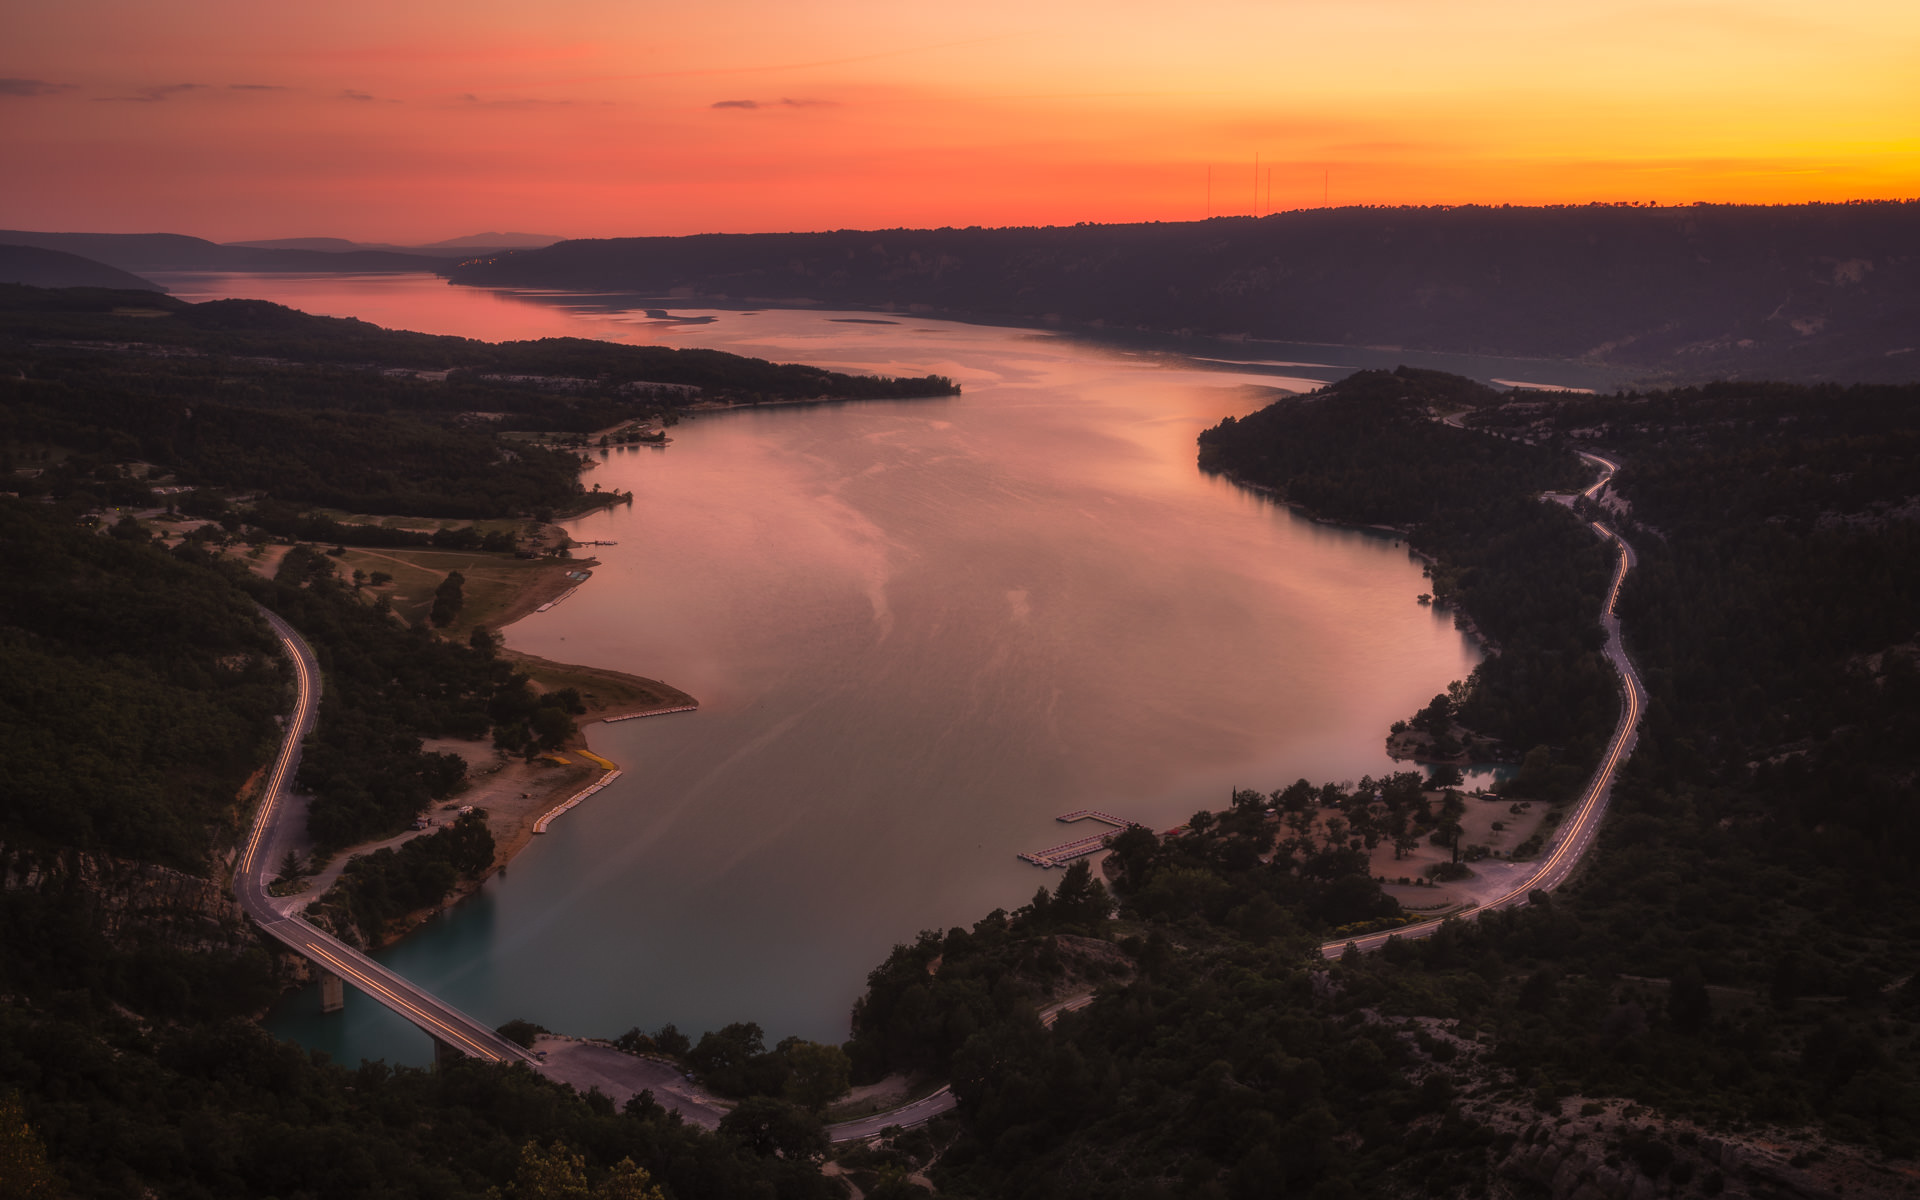 Orange Sunset at Lac de Sainte-Croix from Verdon Canyon